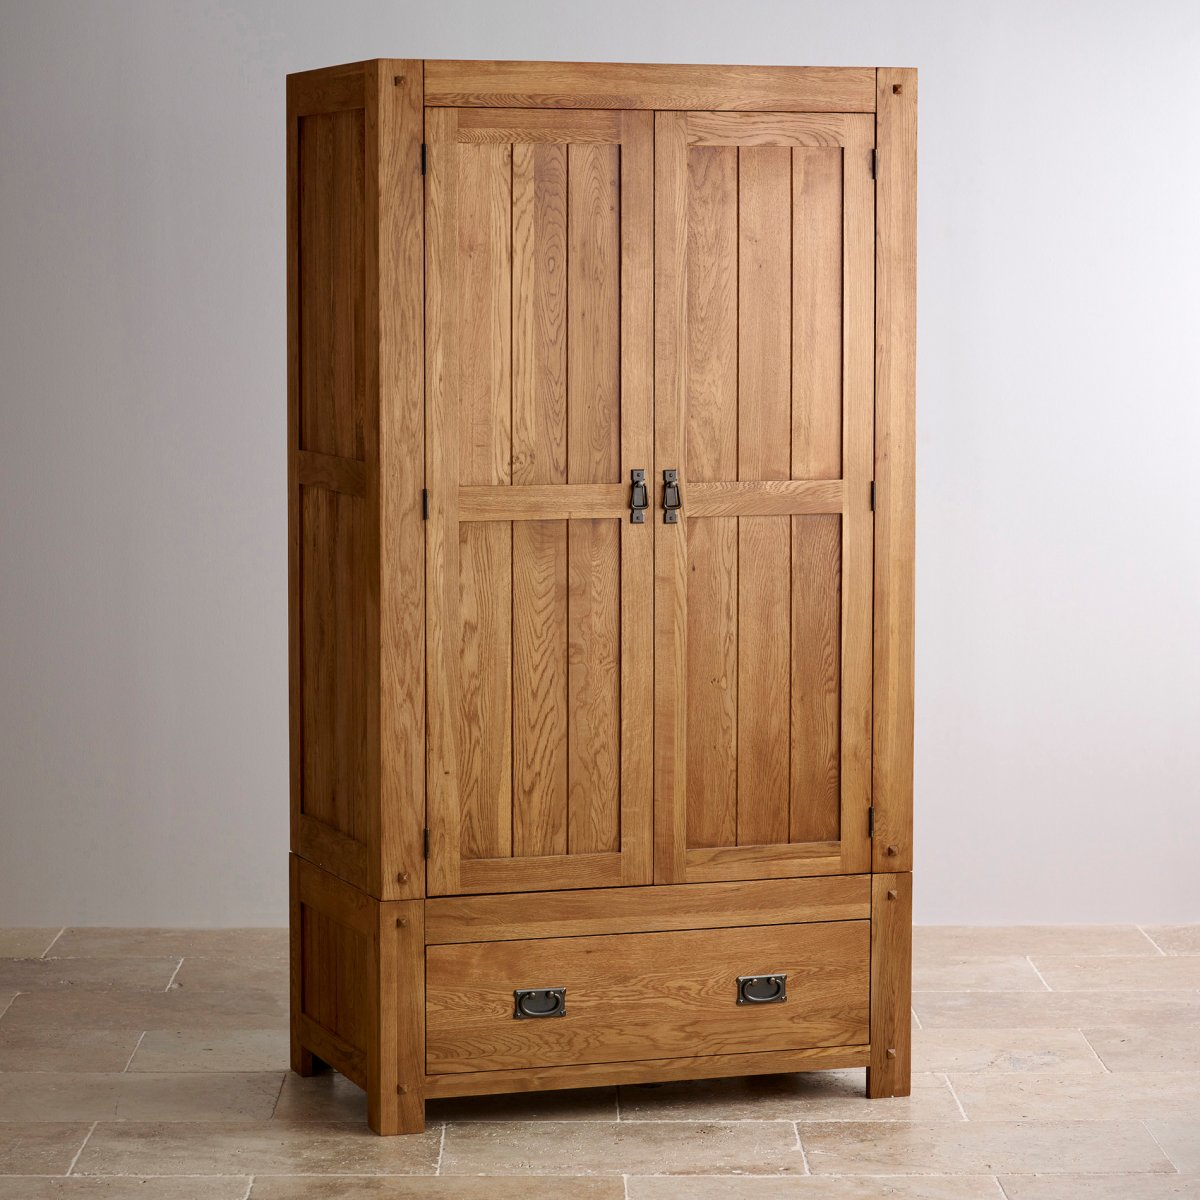 Quercus double wardrobe in rustic solid oak oak for Solid oak furniture